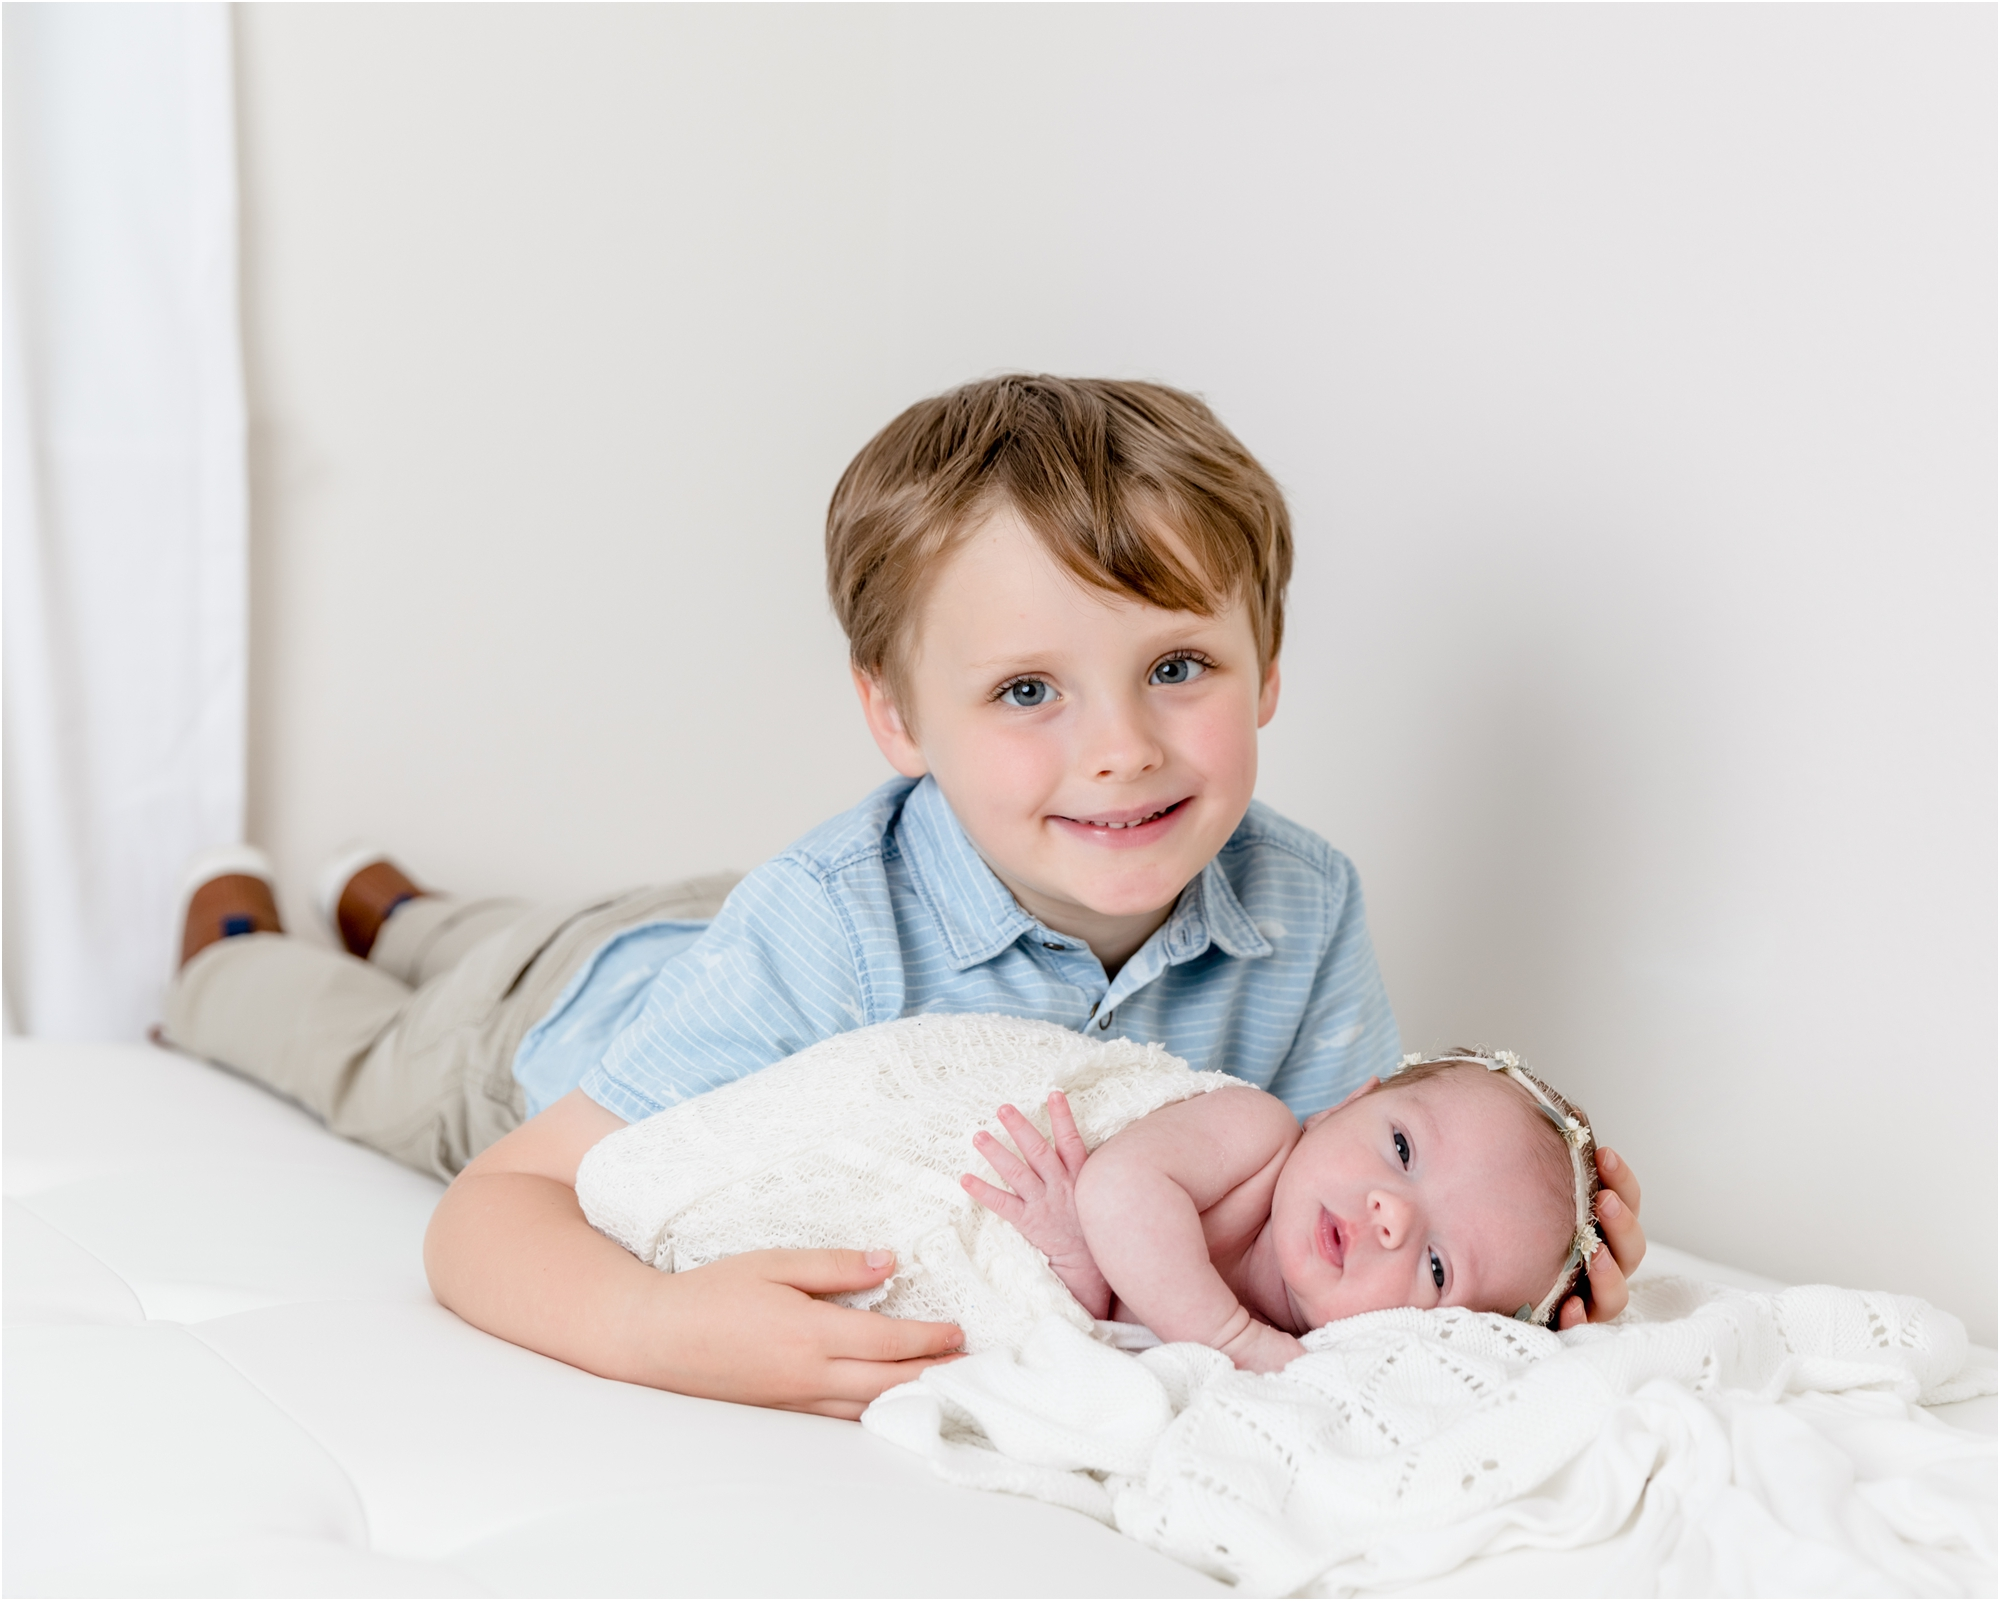 Big brother laying next to baby during newborn session in Katy TX studio. Photo by Lifetime of Clicks Photography.